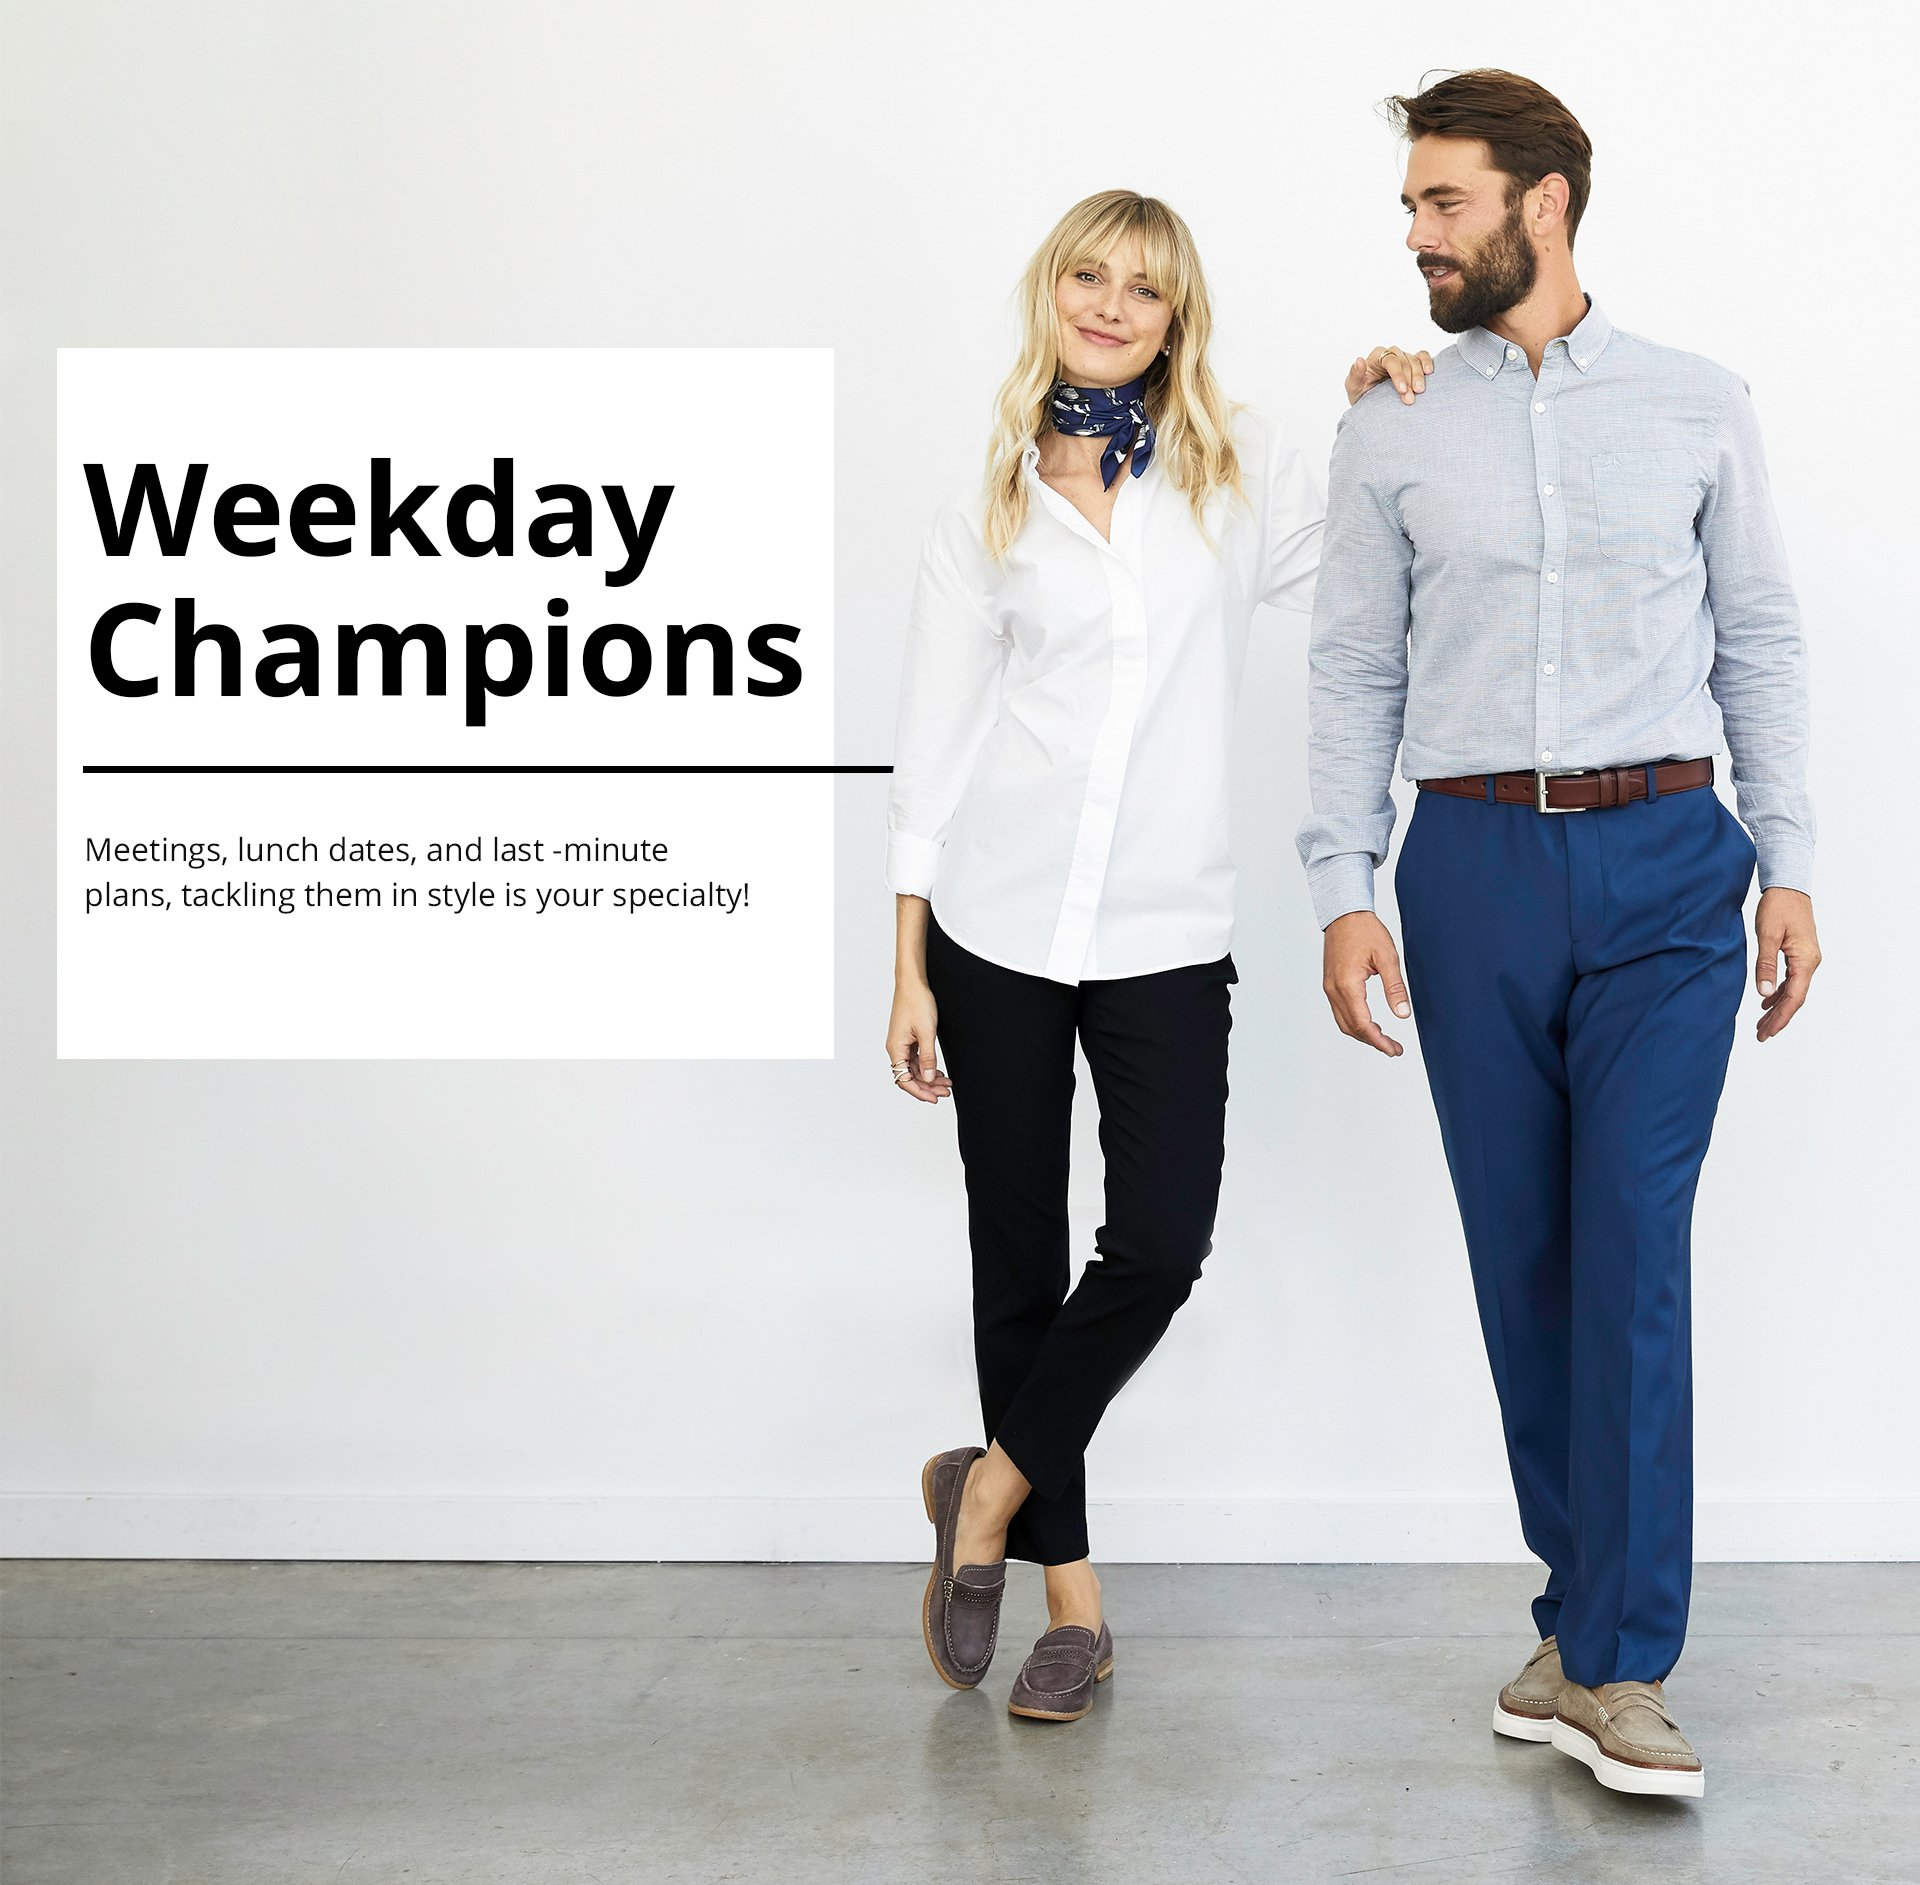 Weekday Champions